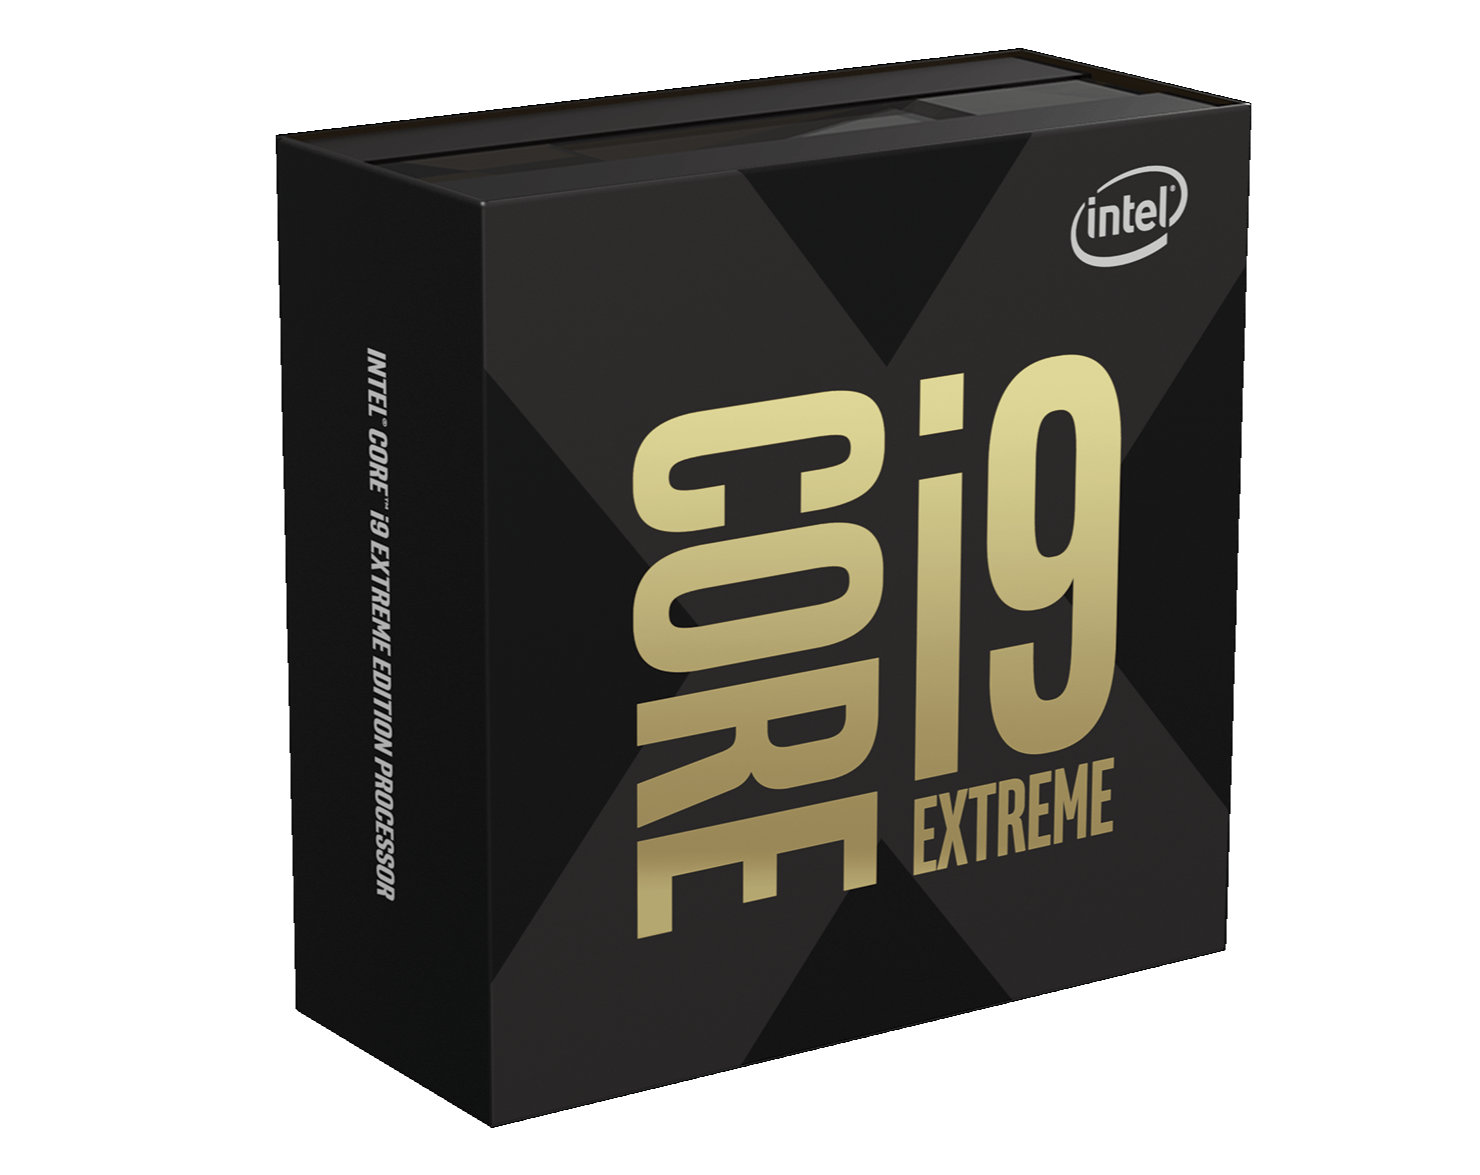 Intel to launch new